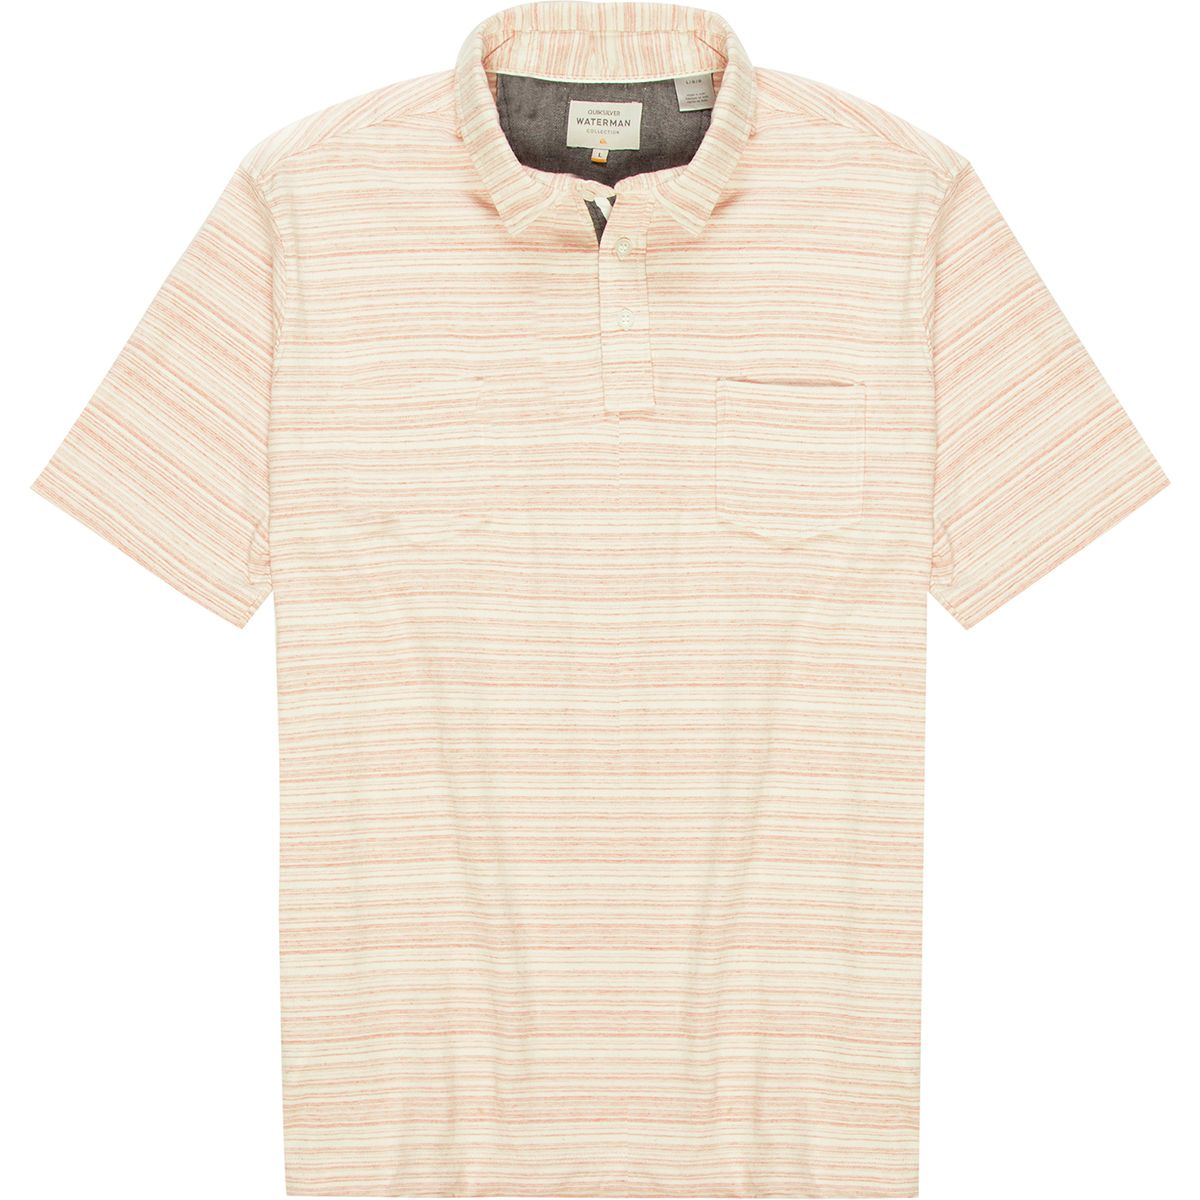 Quiksilver Waterman Sand Dollar Short-Sleeve Polo - Men's Dusty Coral Sand Dollar, S